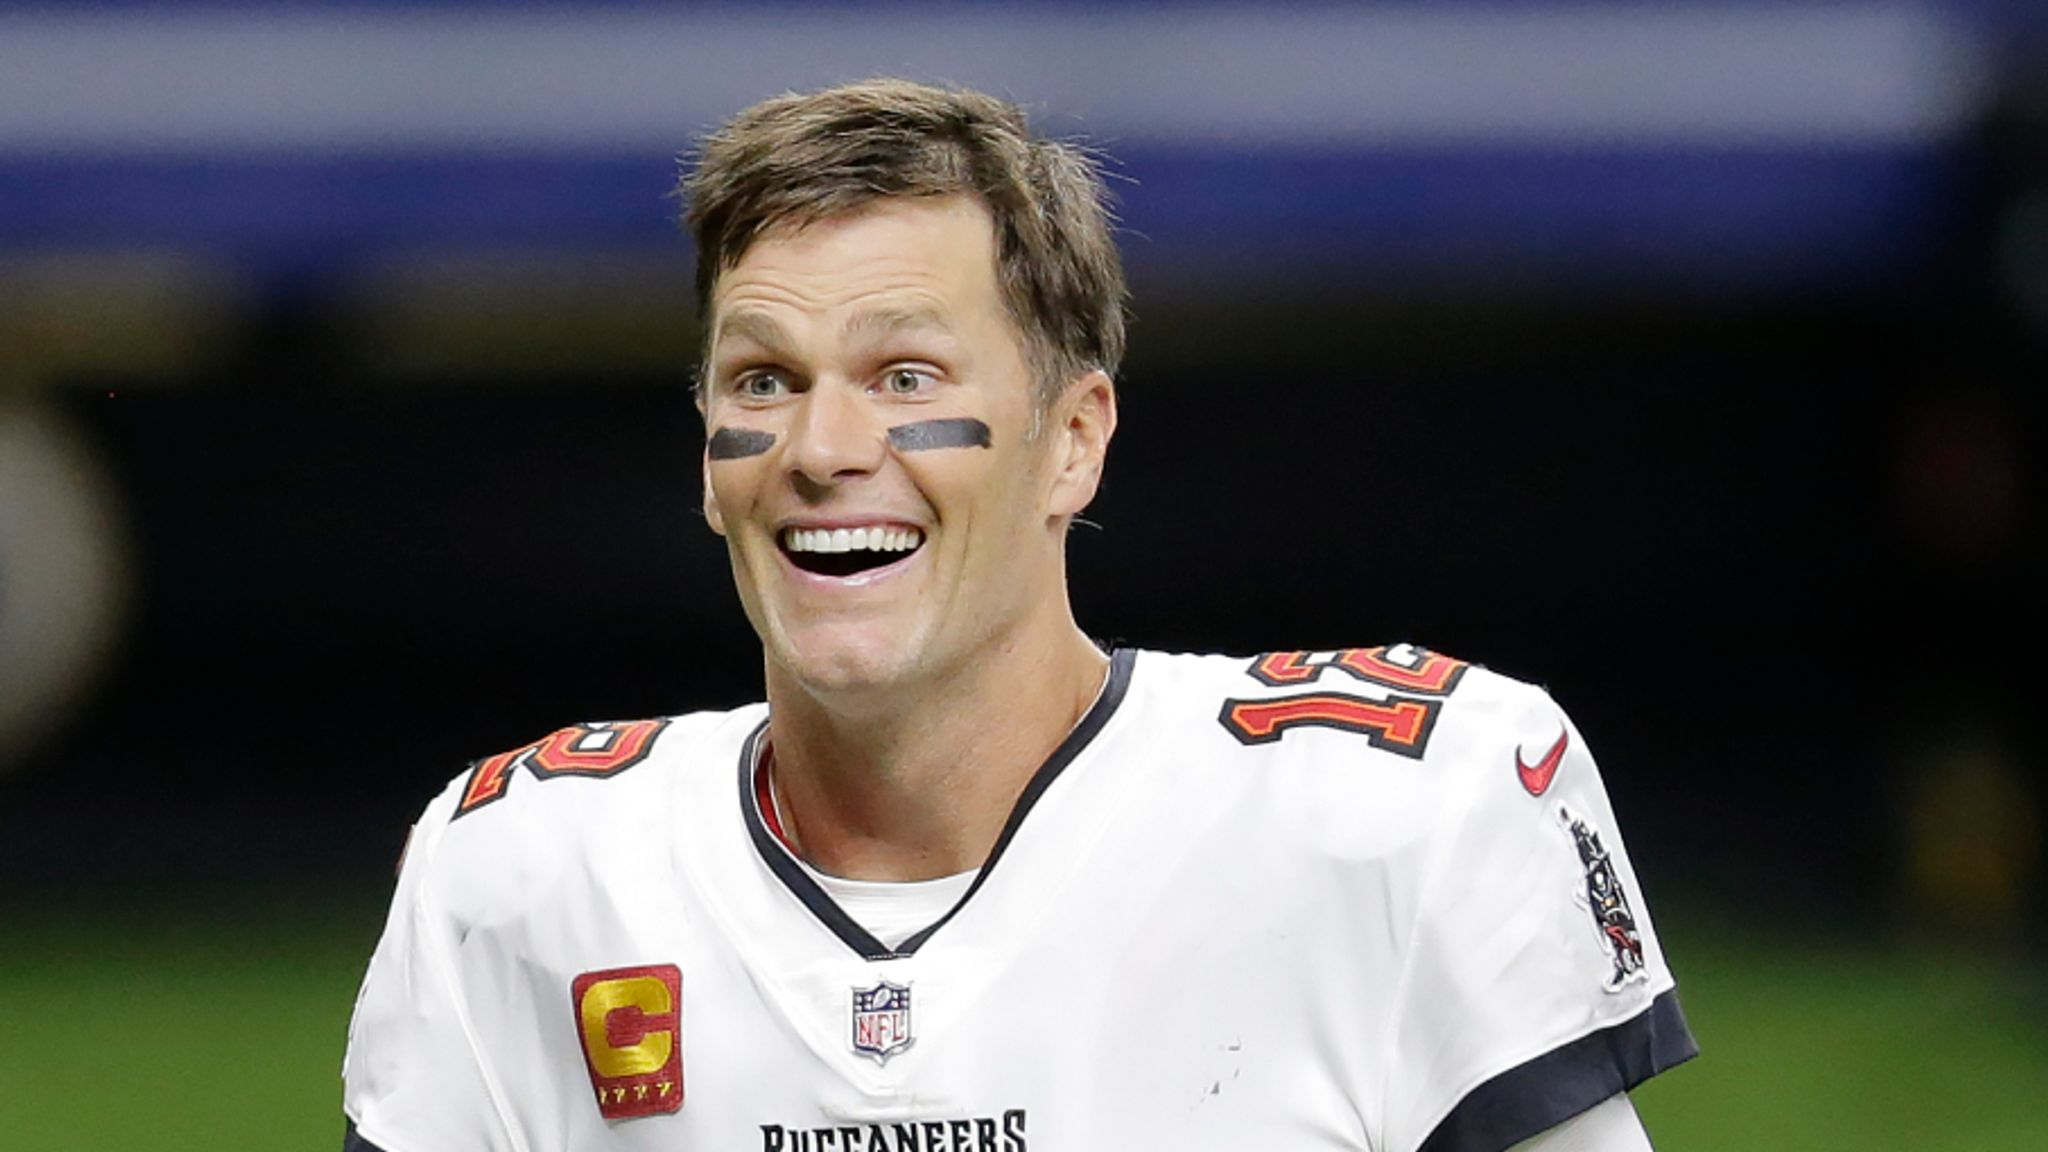 Tom Brady Super Bowl Lv Run With Tampa Bay Buccaneers A Magical Year And Bruce Arians A Great Leader Nfl News Sky Sports